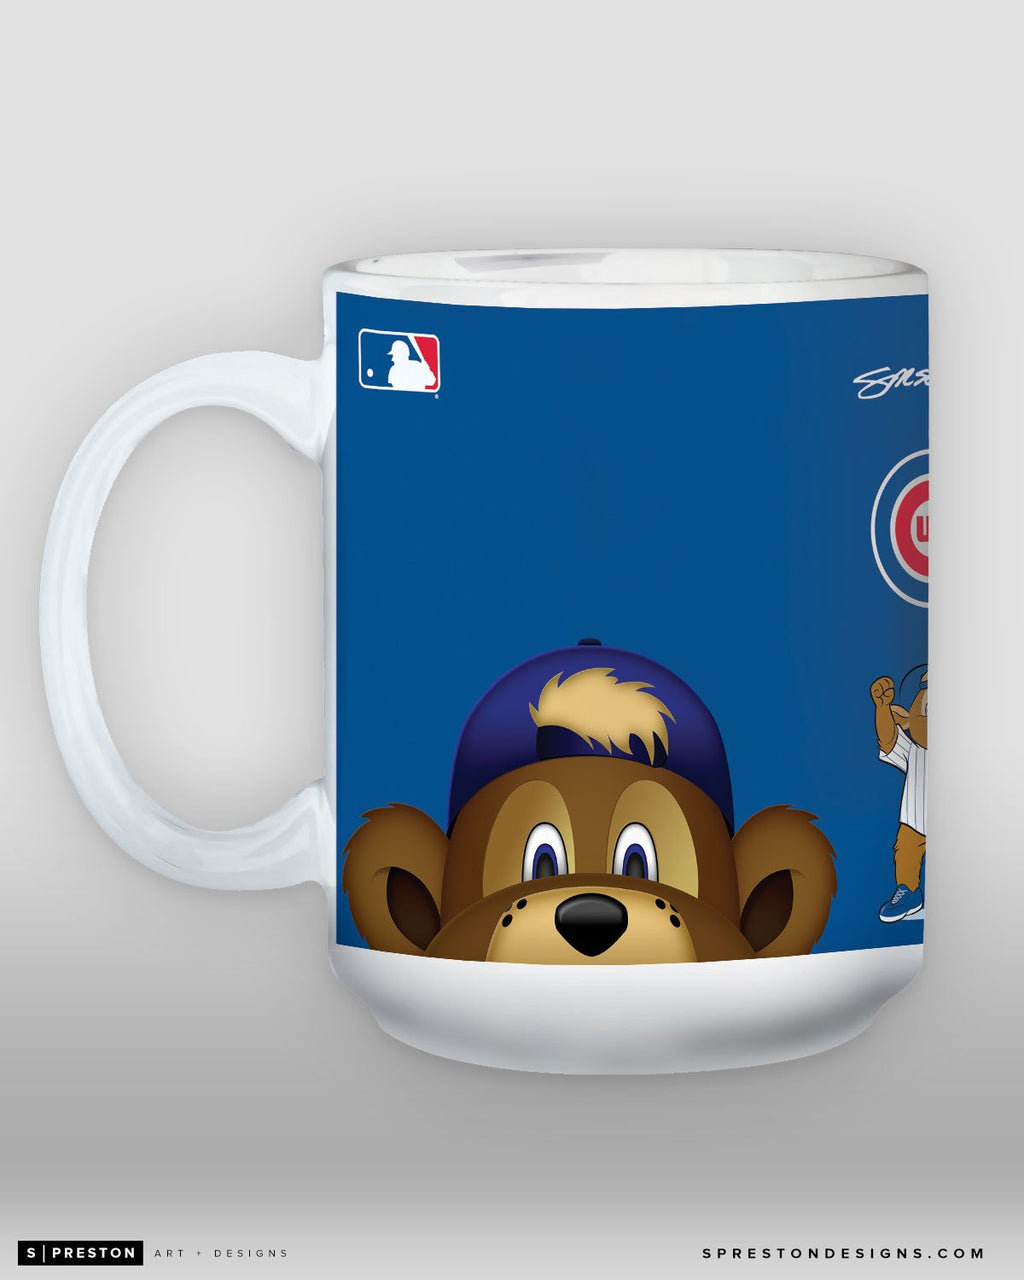 Minimalist Clark The Cub Coffee Mug - MLB Licensed - Chicago Cubs Mascot